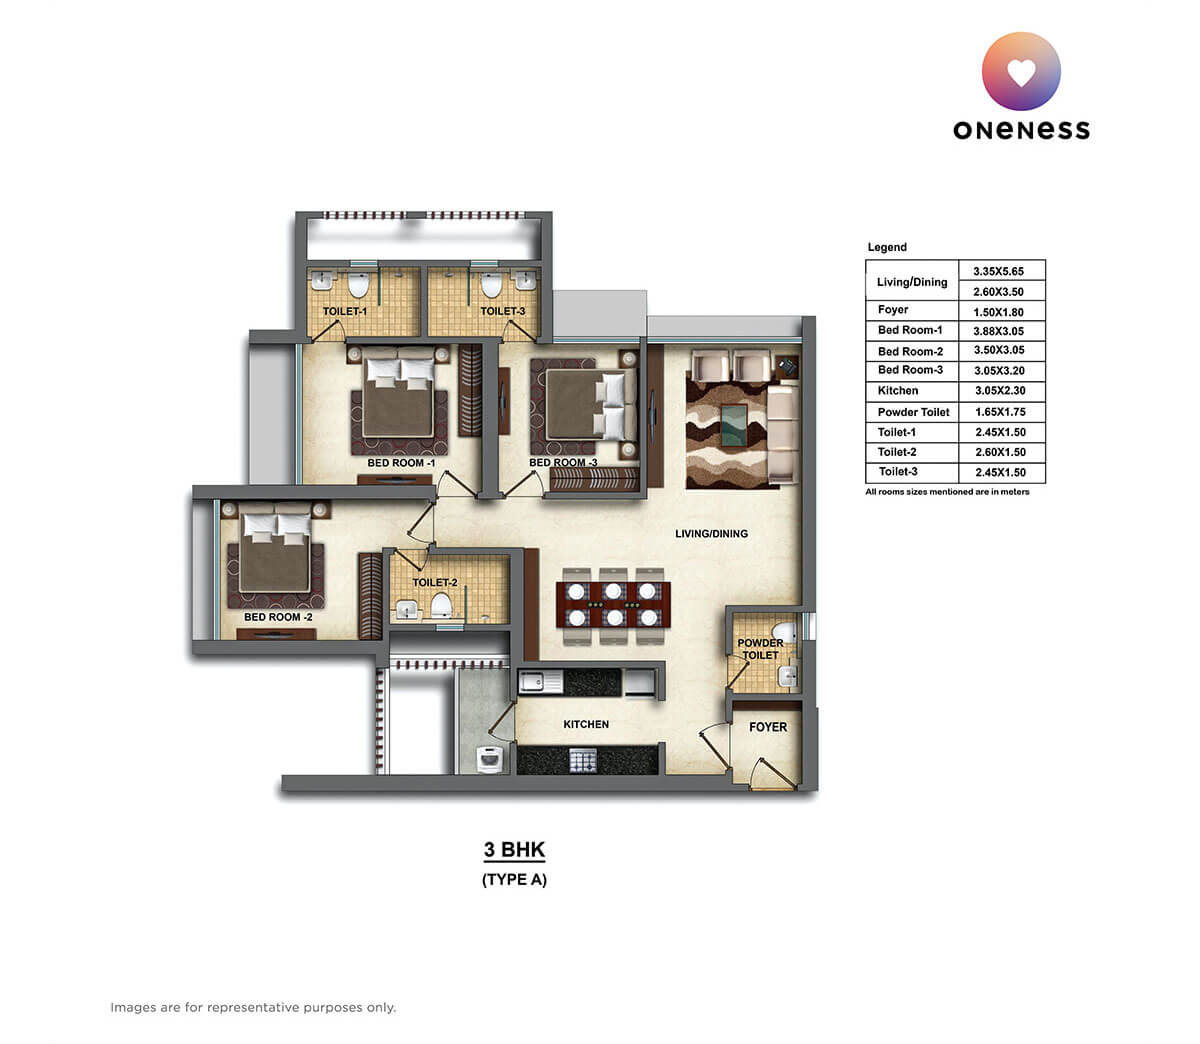 dheeraj oneness apartment 3bhk 1045sqft 1